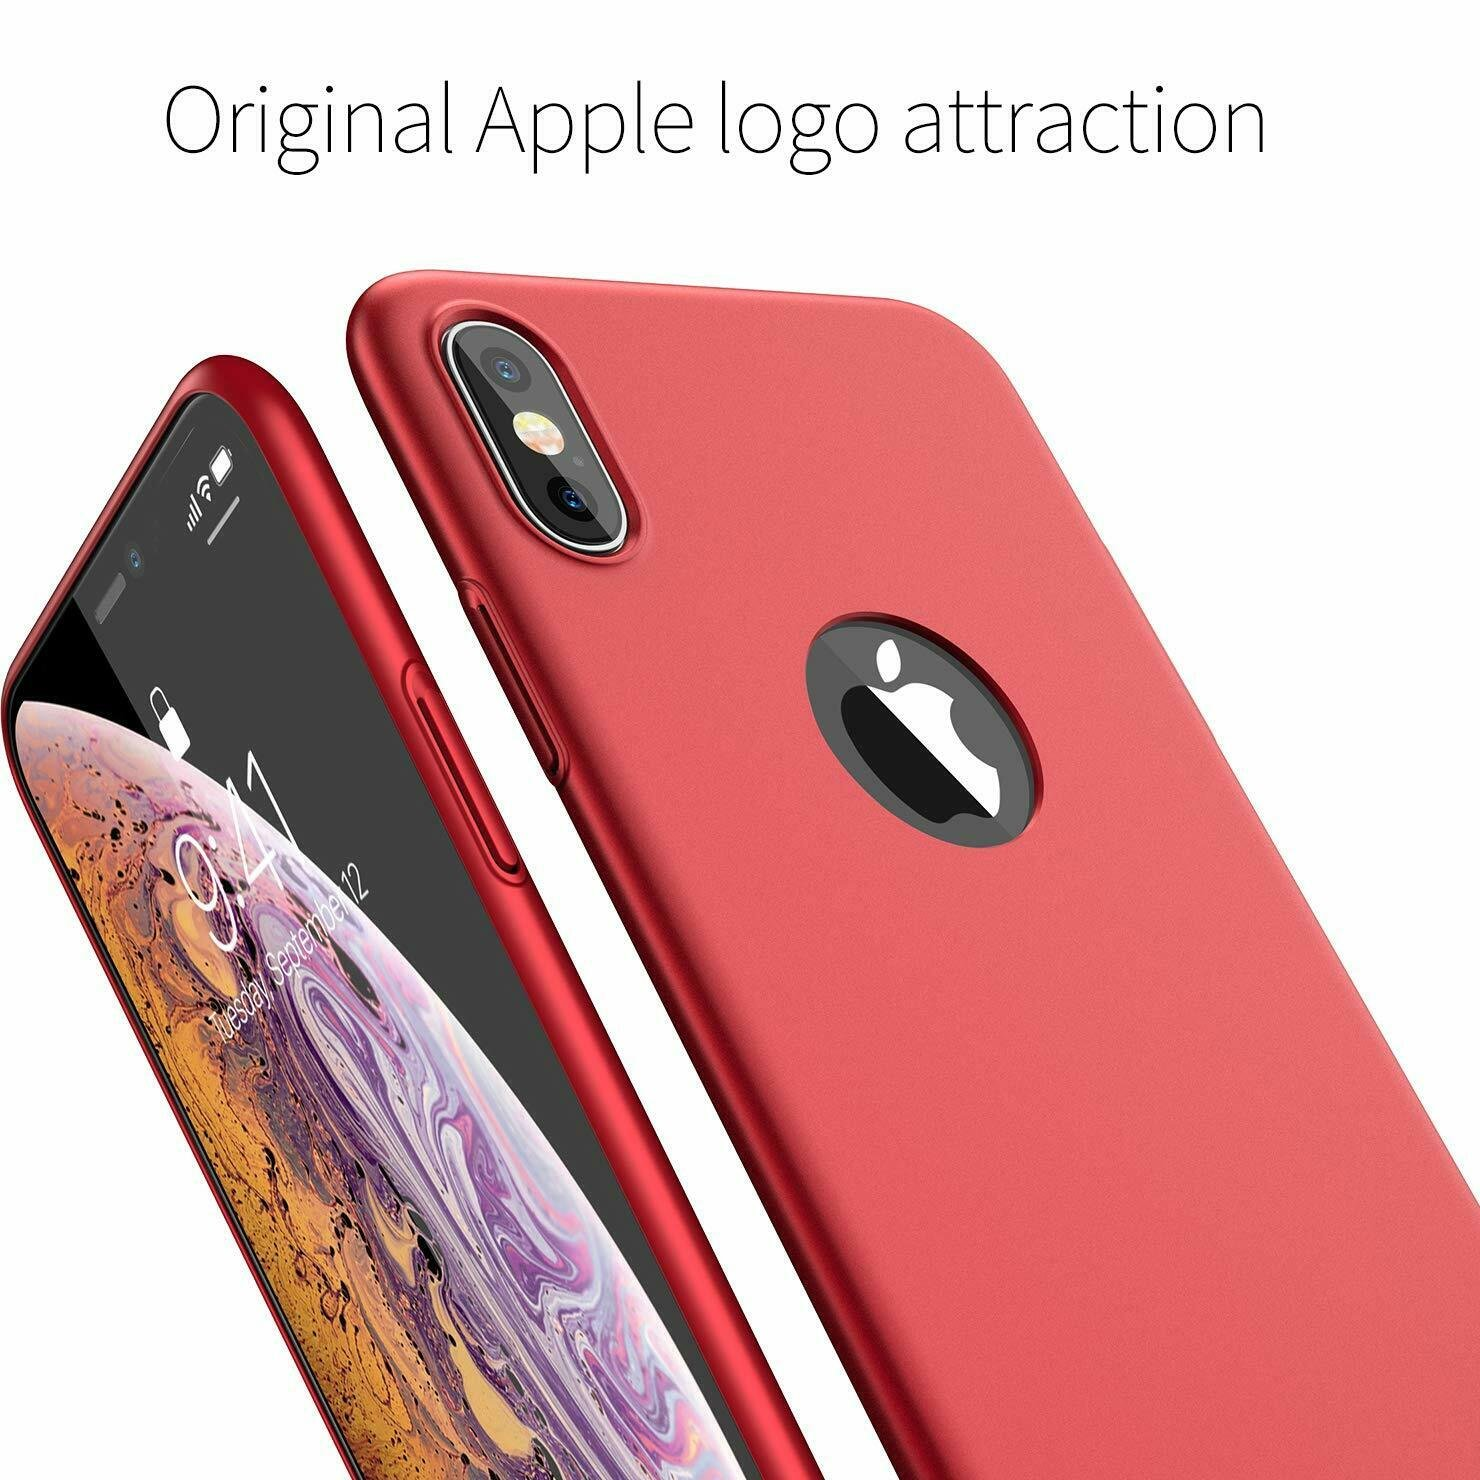 For-iPhone-X-XR-XS-Max-Matte-Case-Shockproof-Ultra-Thin-Slim-Hard-Cover thumbnail 26